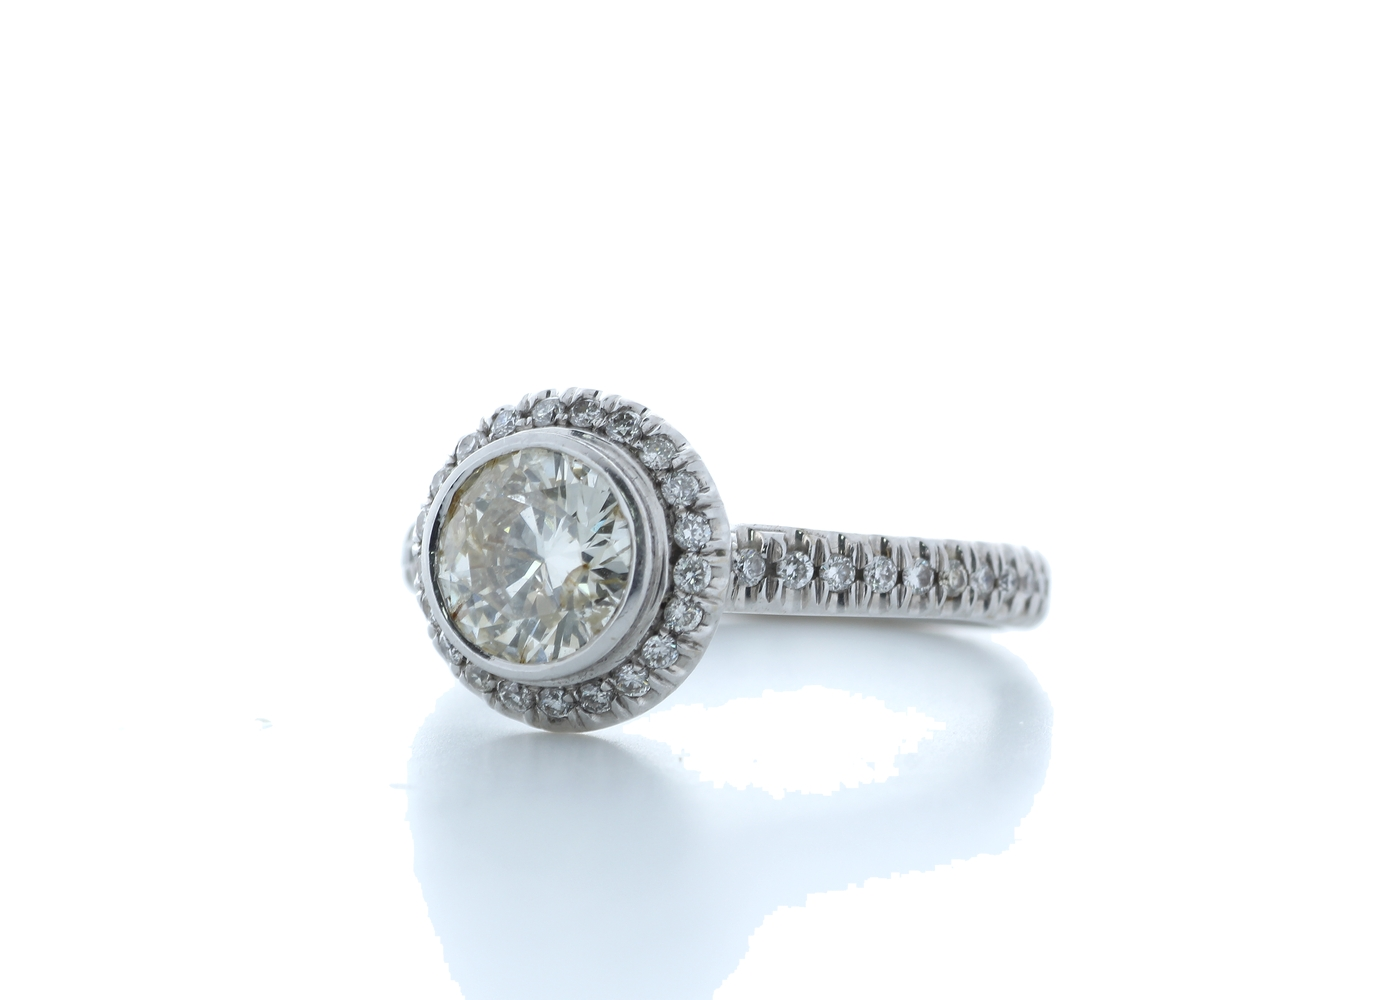 18ct White Gold Single Stone With Halo Setting Ring 1.39 Carats - Image 2 of 5